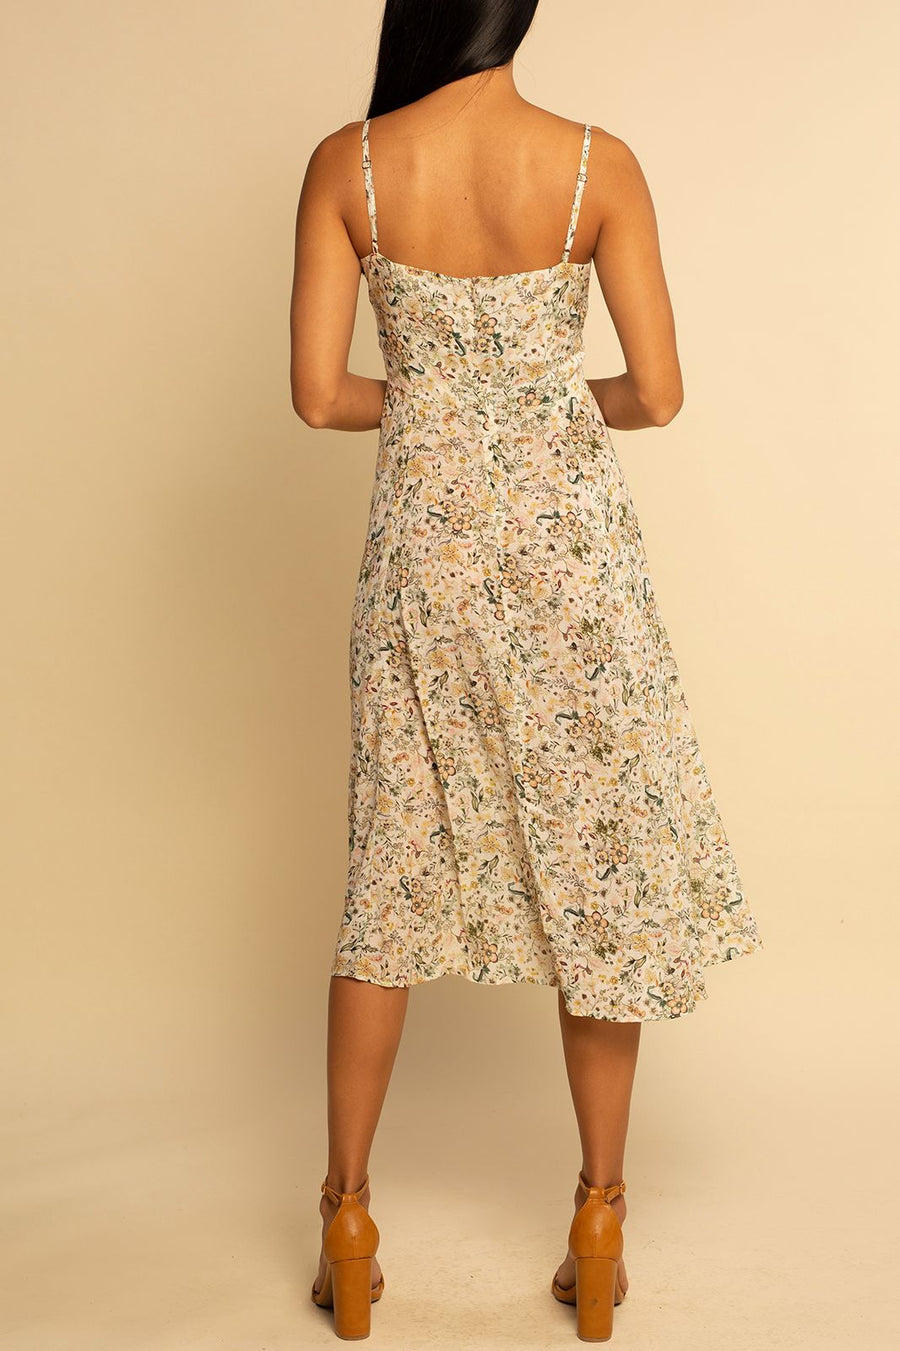 Como Square Neck Dress - Ditsy Floral - Shore